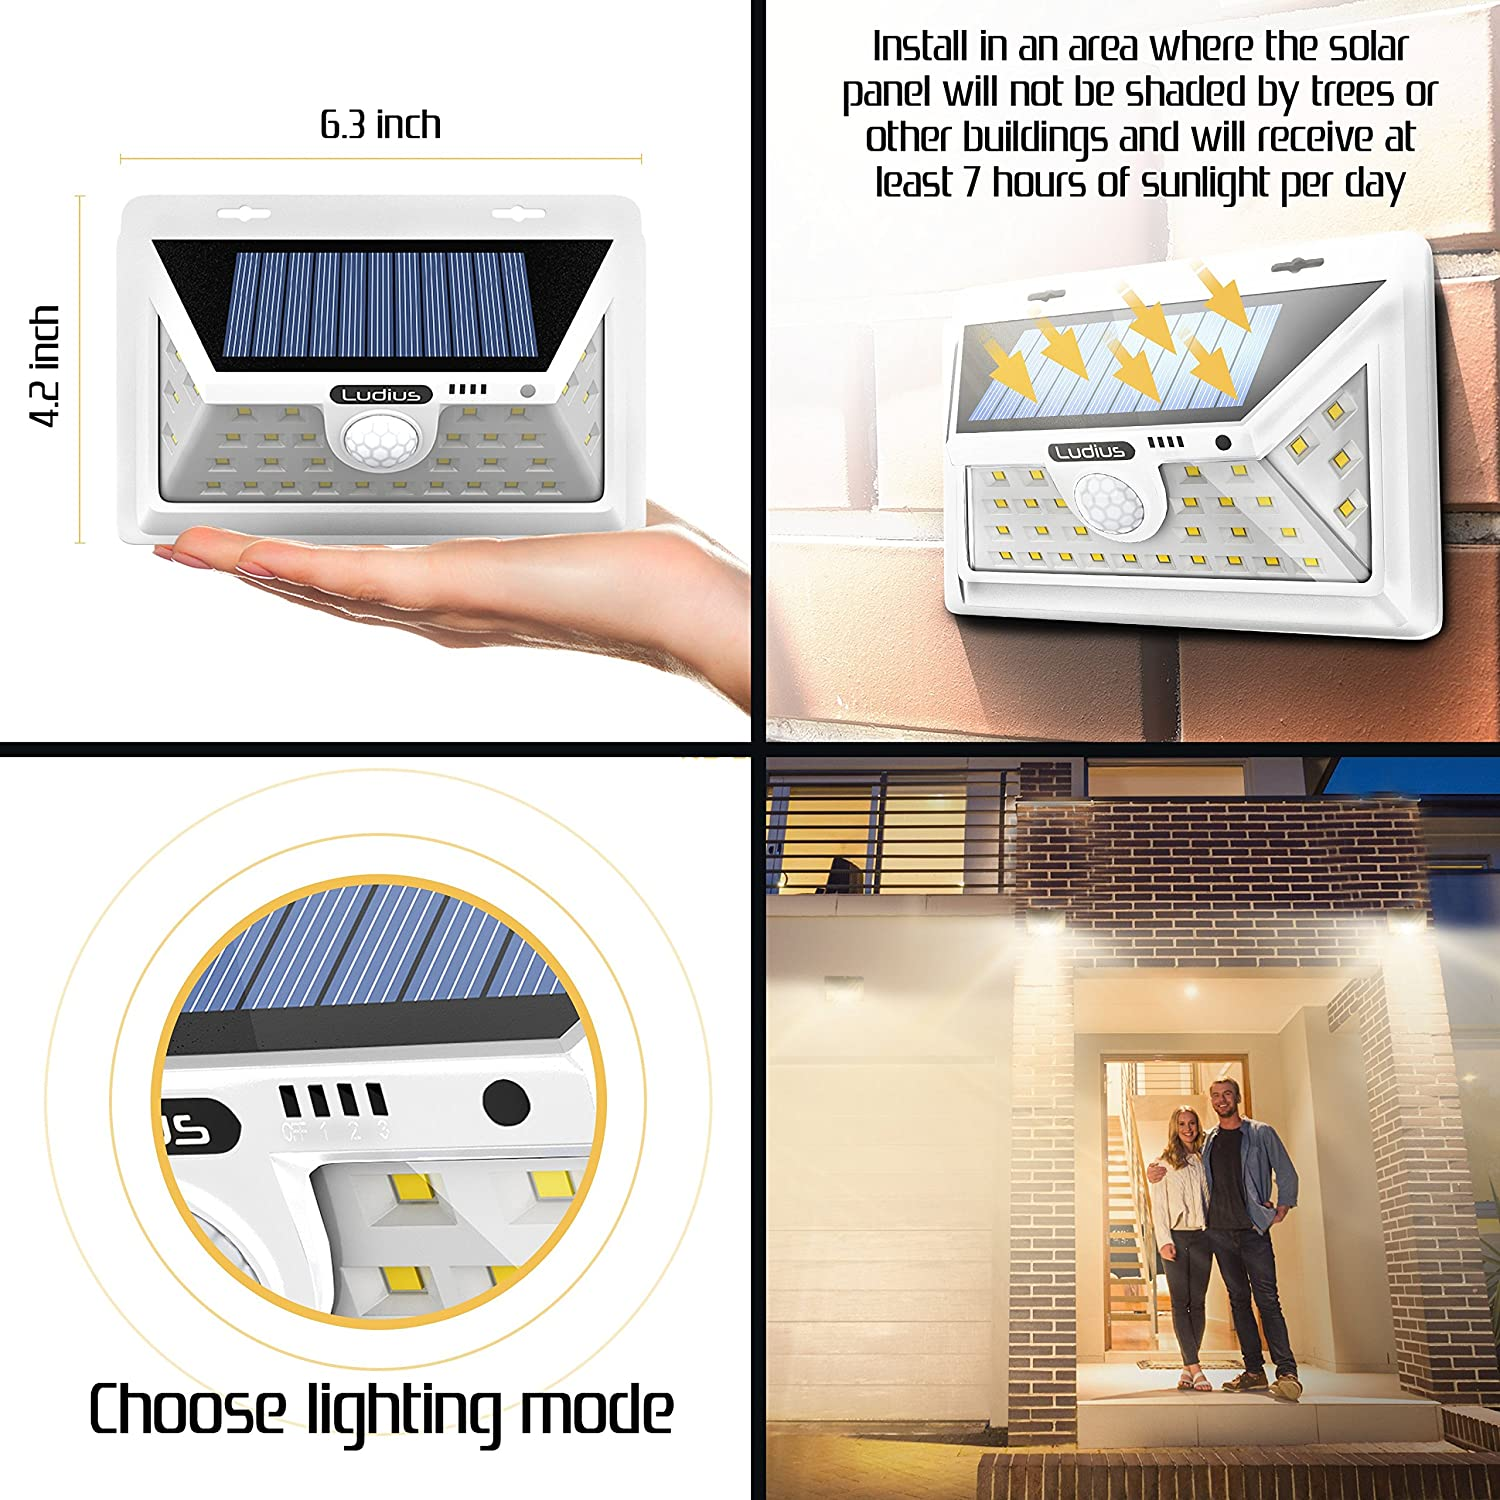 Ludius Solar Lights Outdoor Bright Outside 34 Leds Wide Lightings 6 Wiring Motion Sensor Home Design Inspiration Angle Light For Gardens Pathways Yard Landscape Or Porch